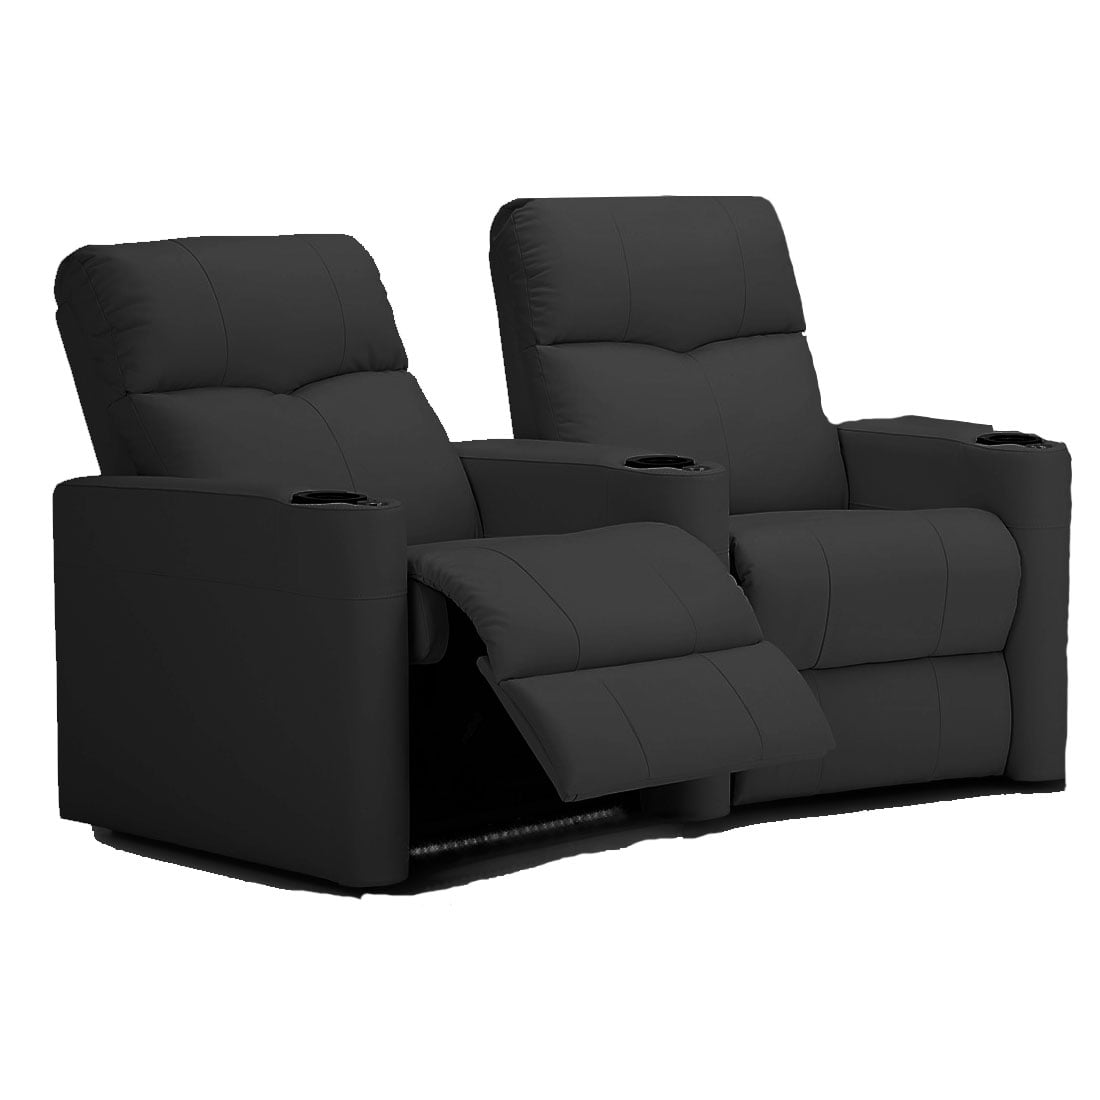 home theater chairs canada desk chair silicon valley palliser seating review co